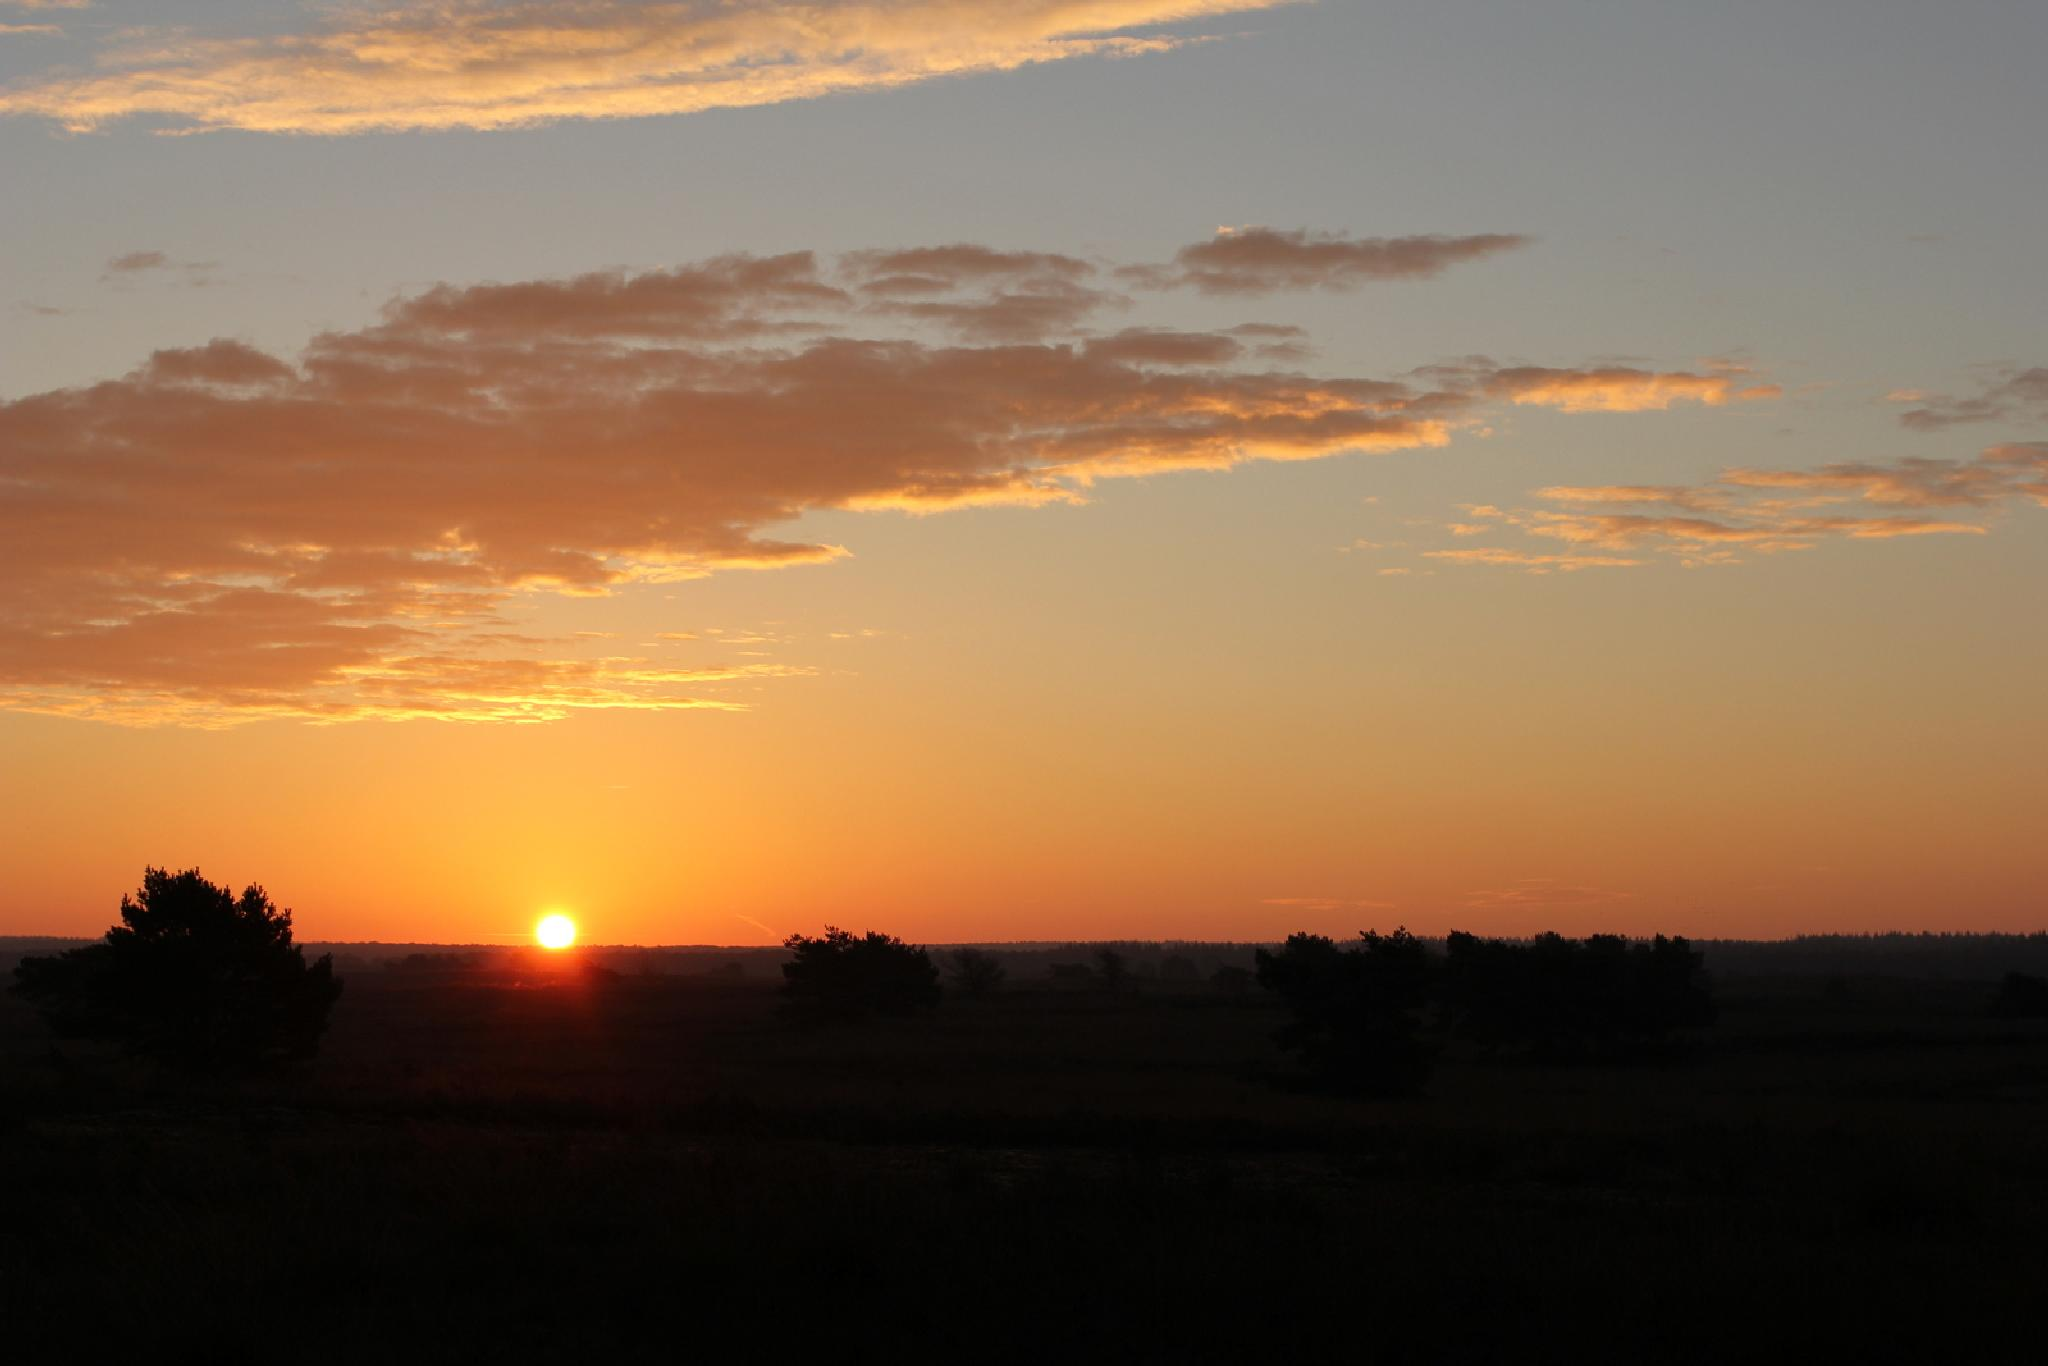 Sunrise this morning by Henry Geerling